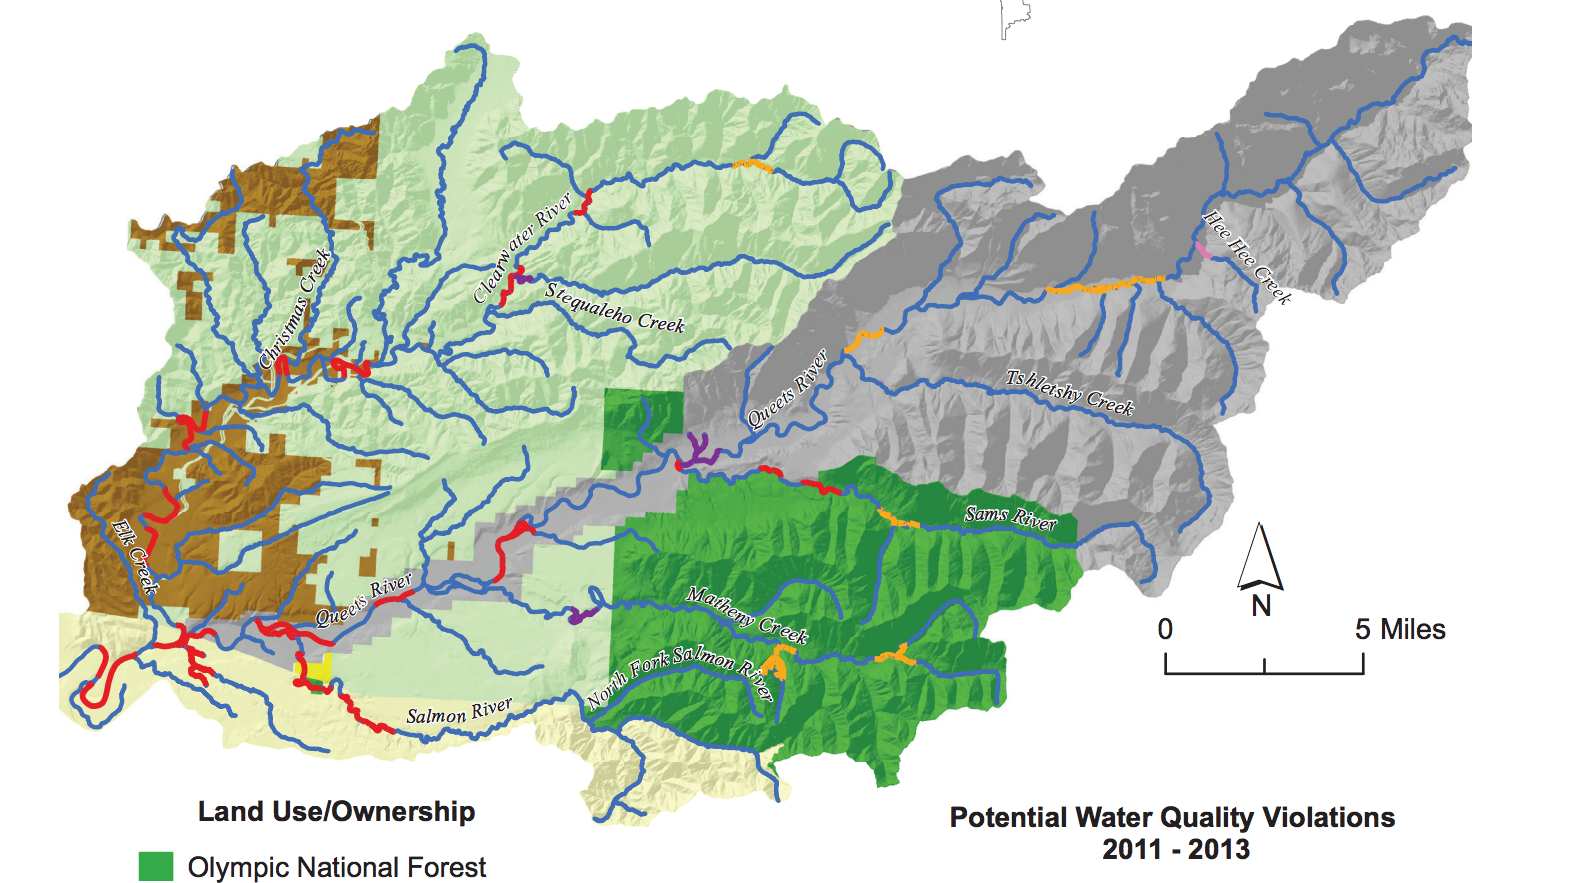 State of Our Watersheds: Glacier melt, logging threatens salmon in the Queets